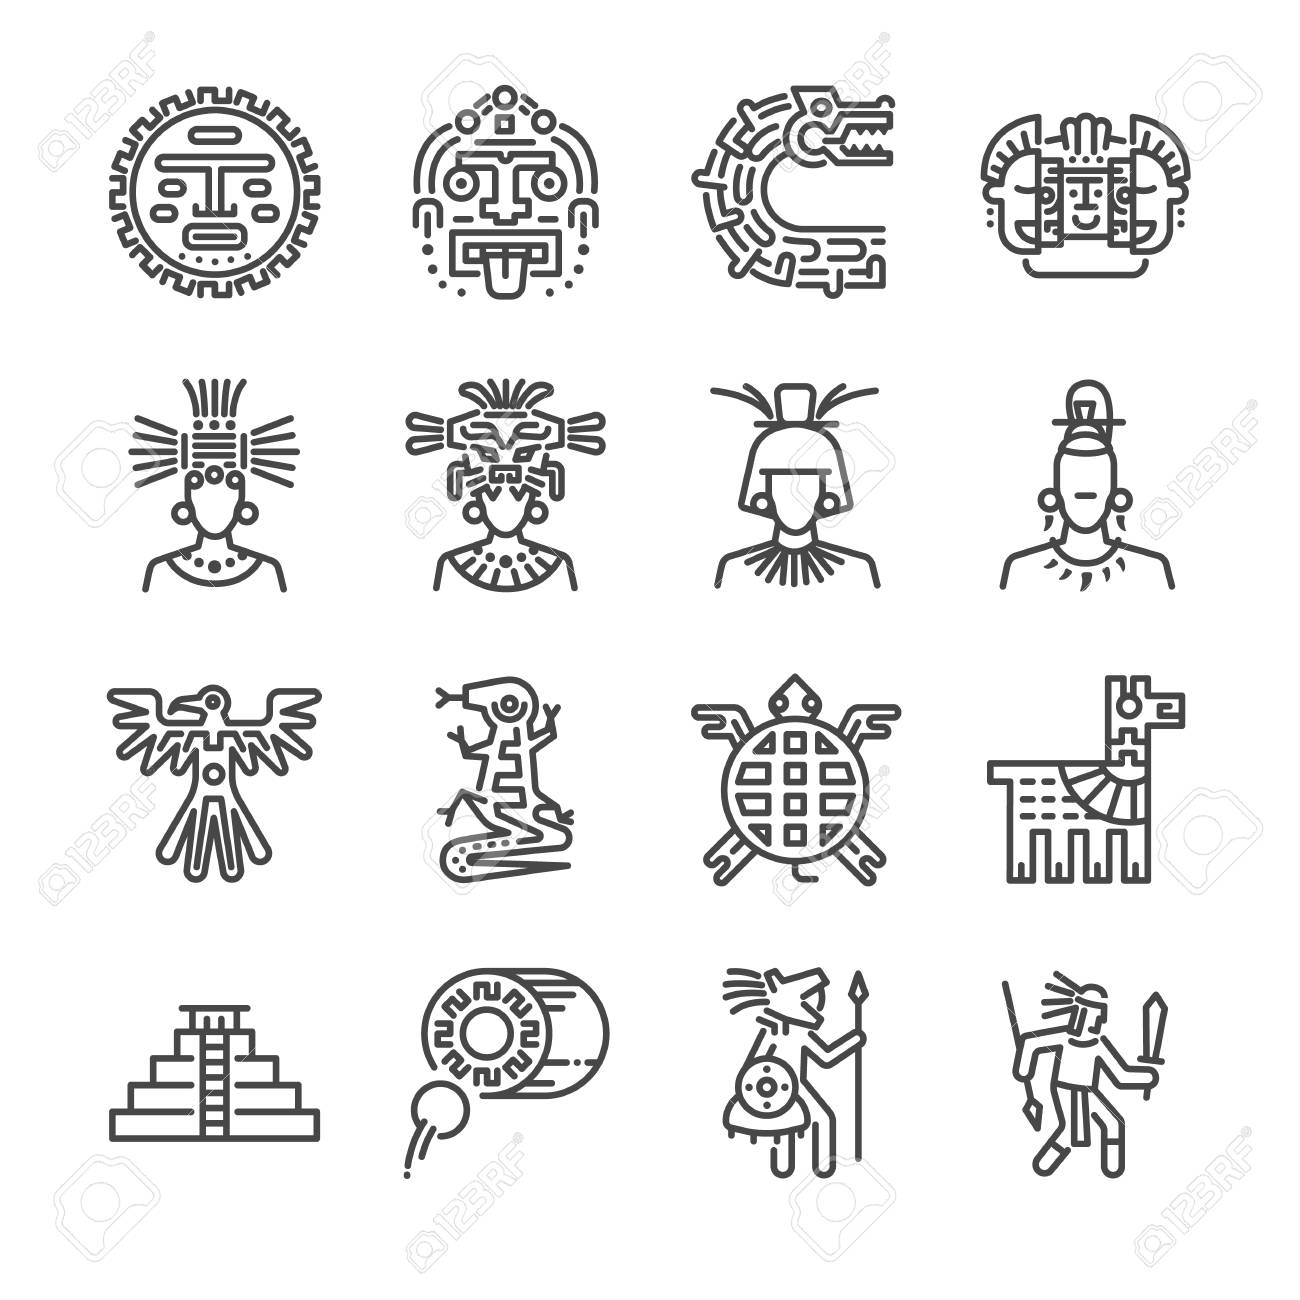 aztec icon set included